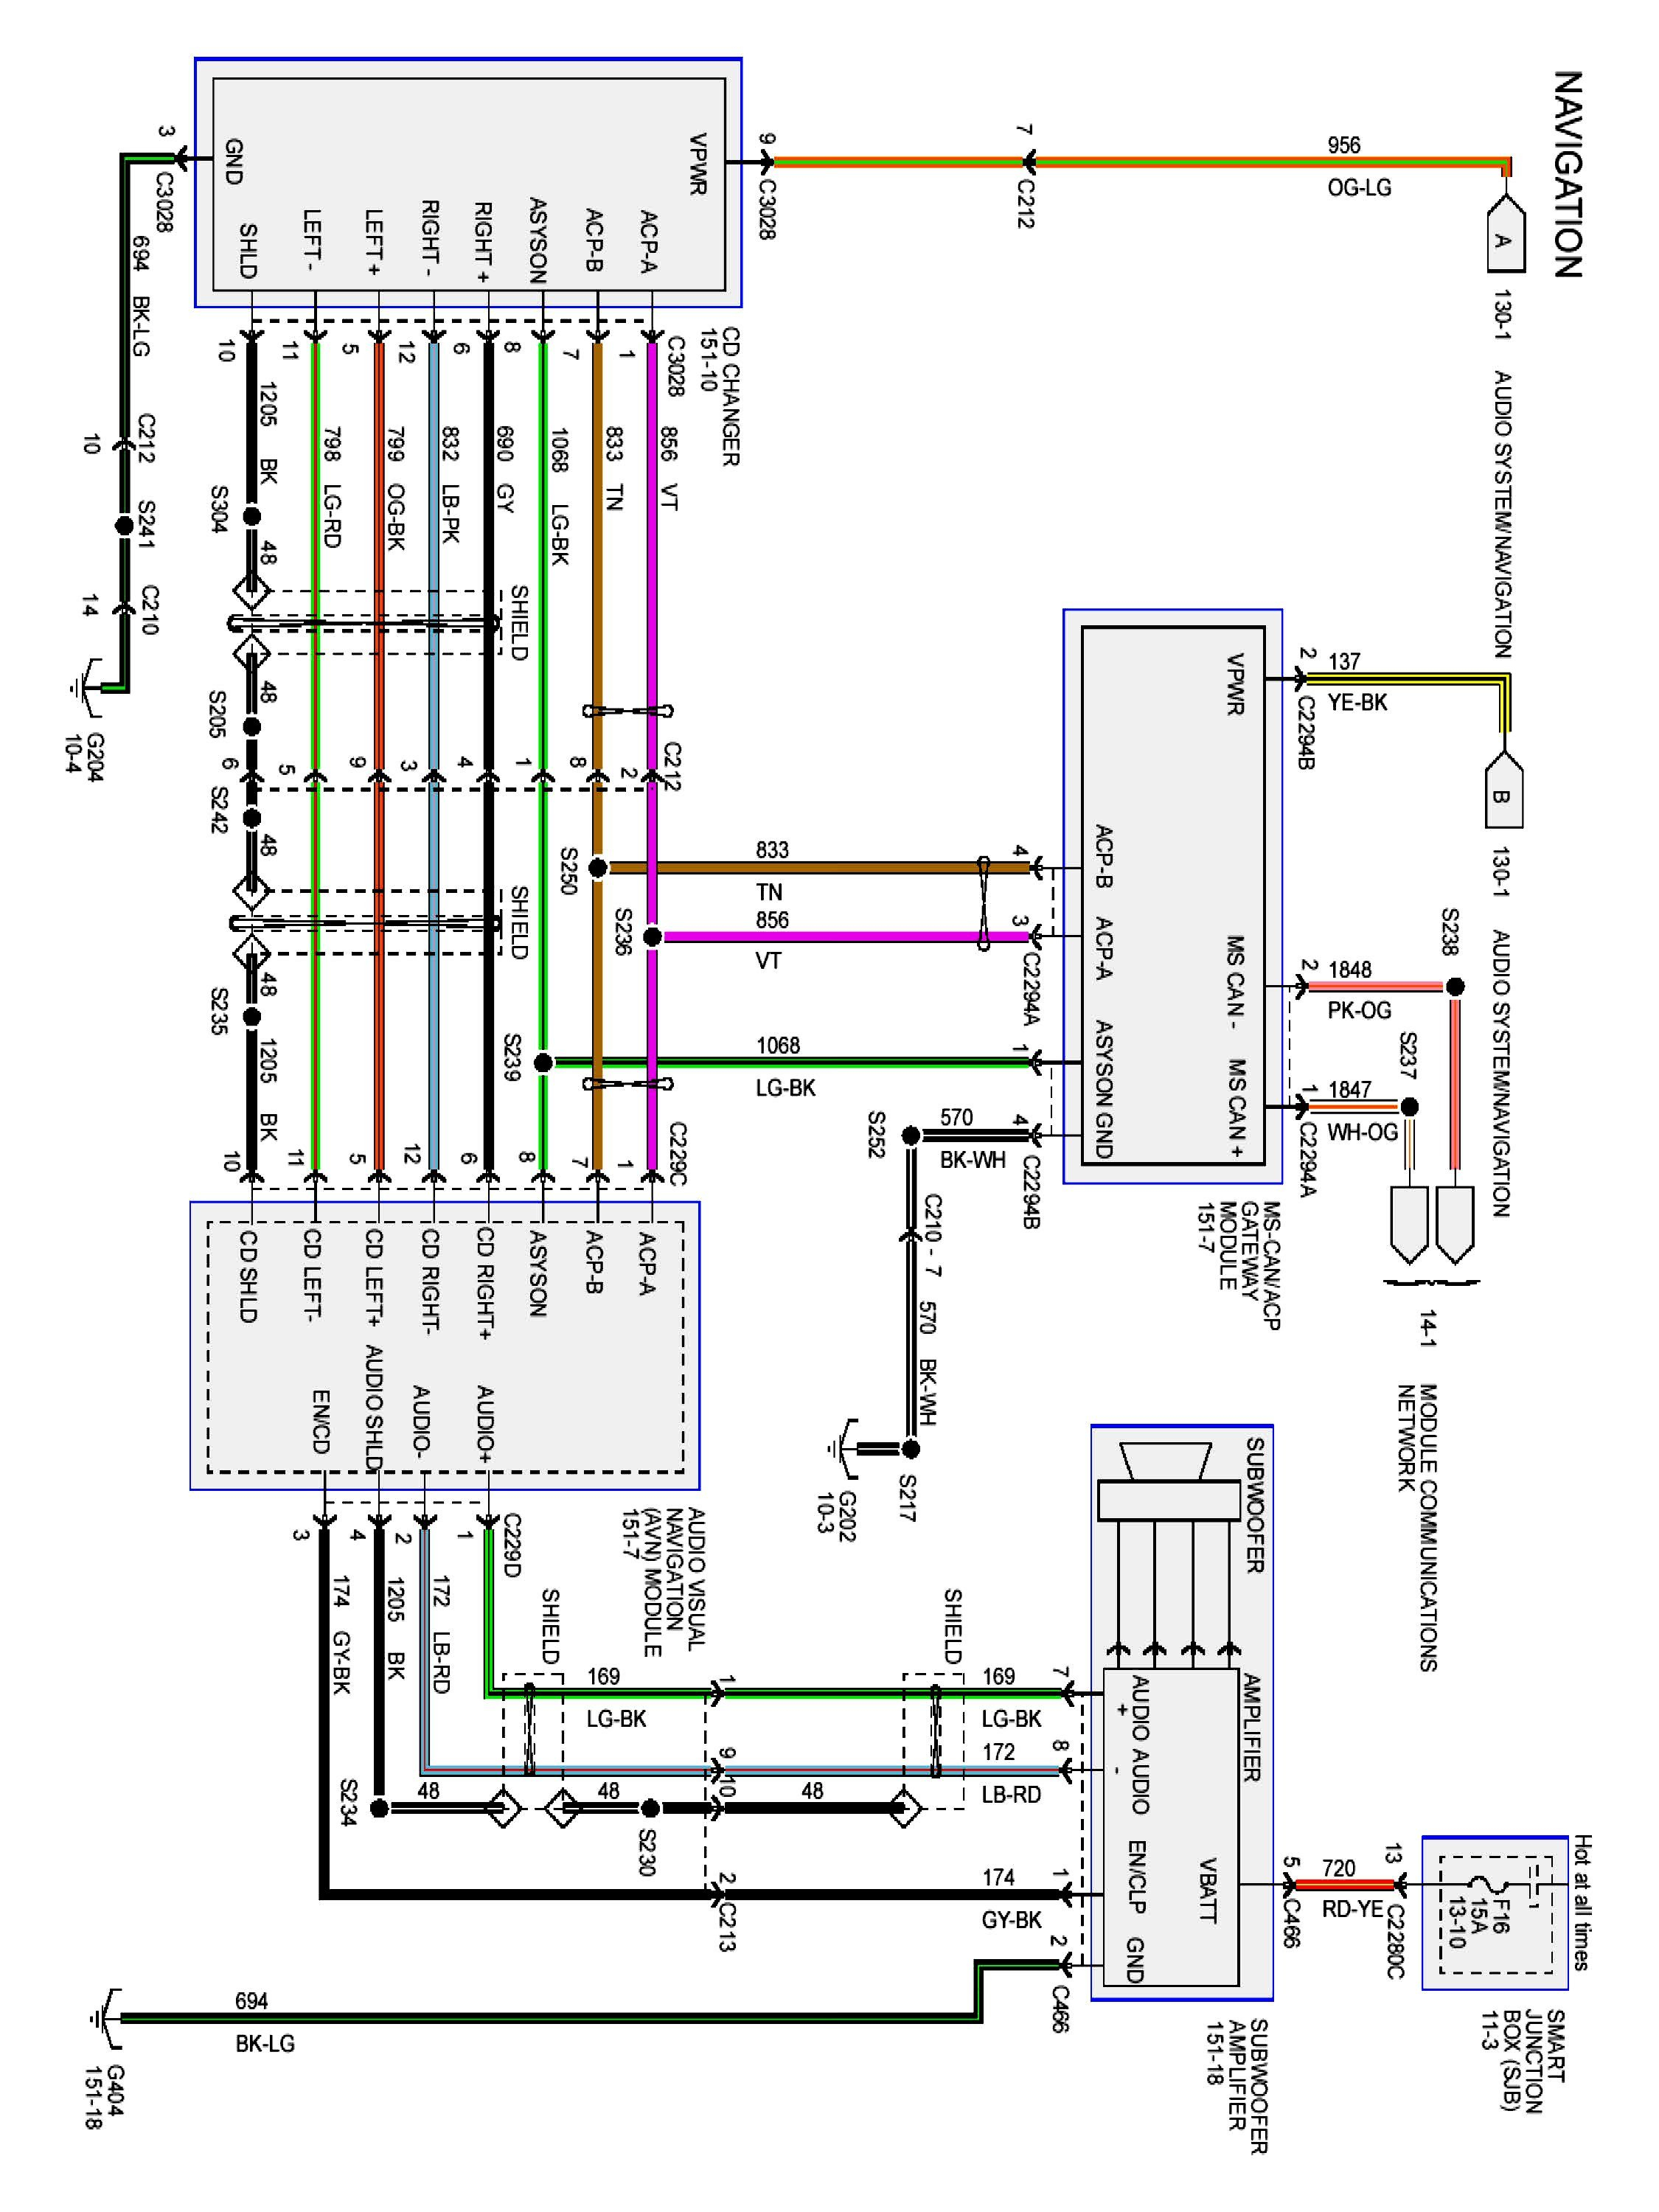 2012 Ford Escape Fuse Box Diagram Wiring Schematic On 2011 Taurus 2003 Example Electrical U2022 Rh Huntervalleyhotels Co 2007